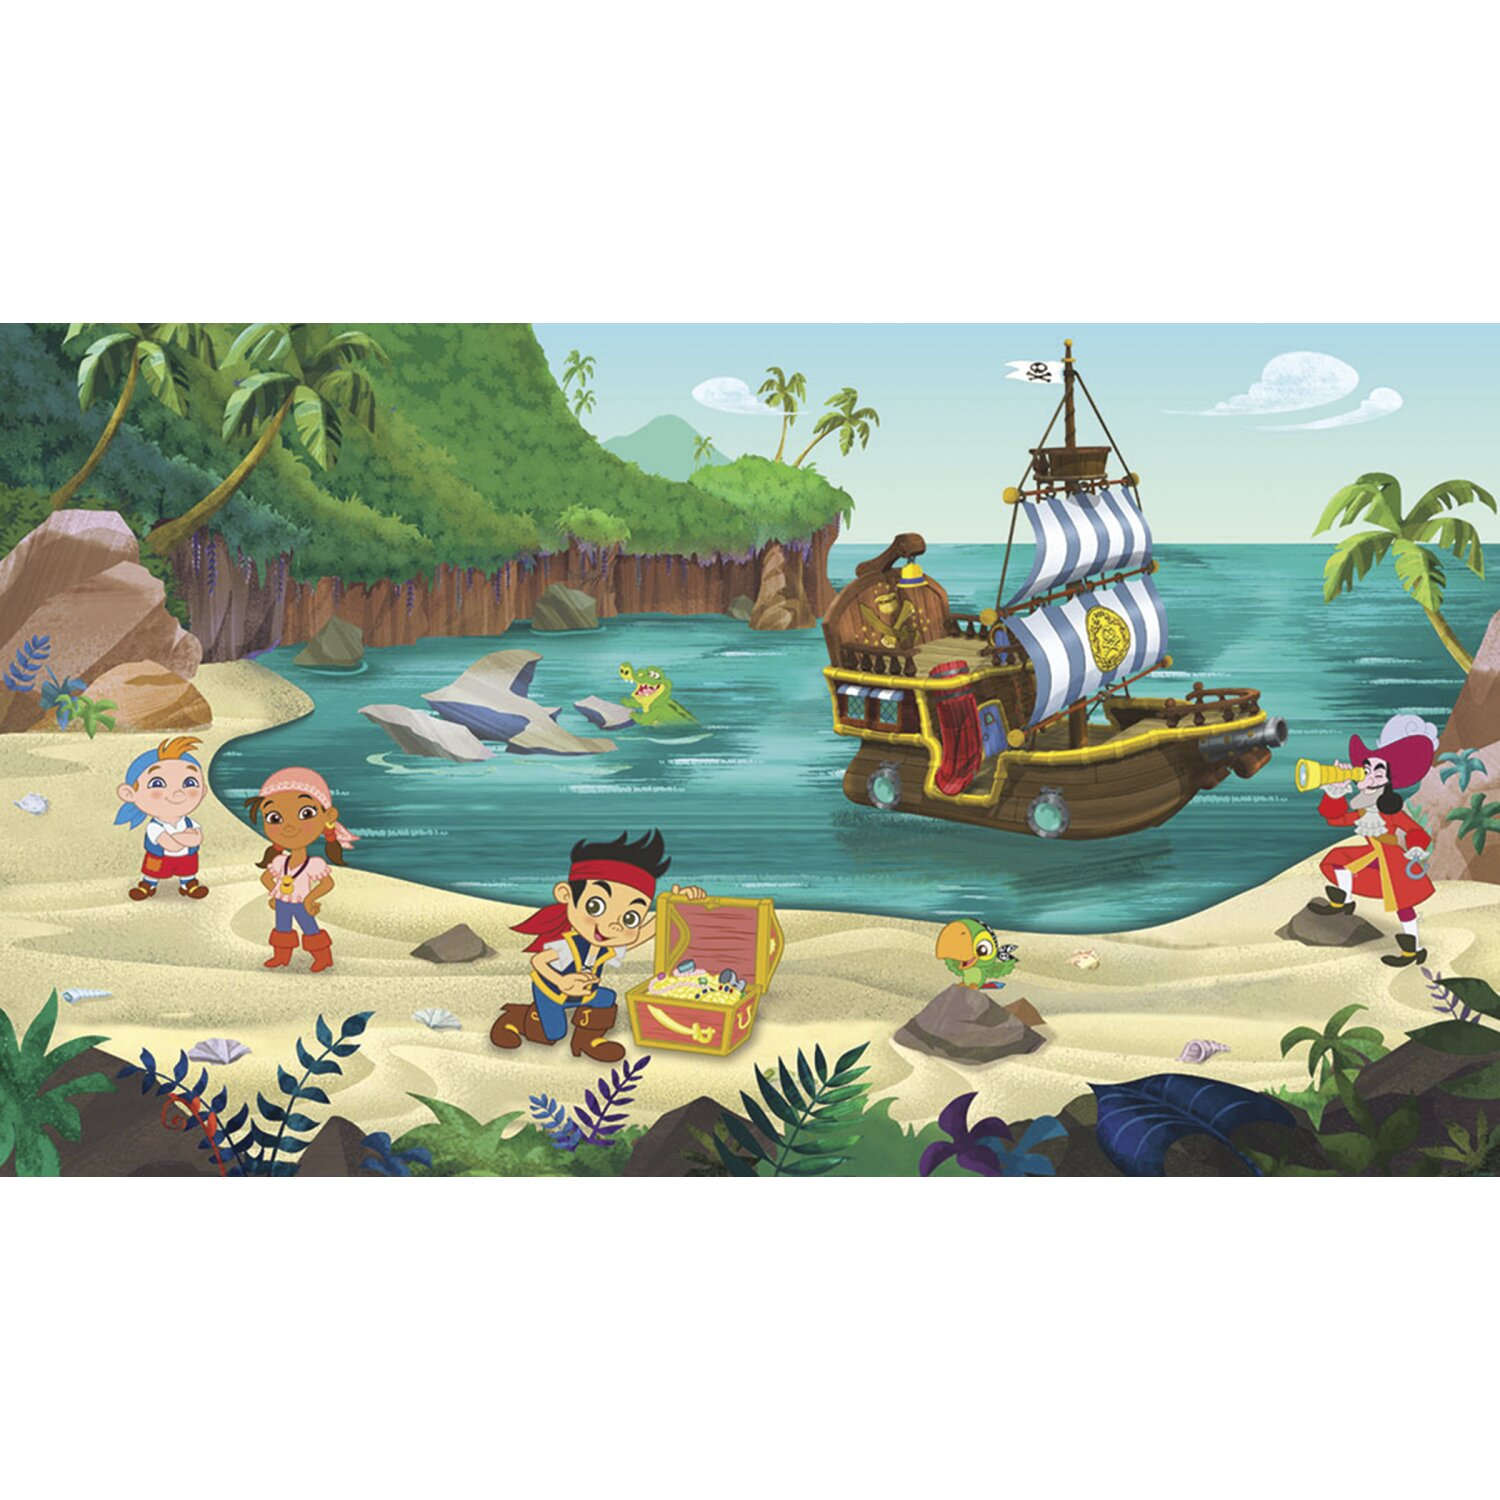 jake and the never land pirates prepasted wall mural wayfair star wars ep vii prepasted surestrip wall mural wall